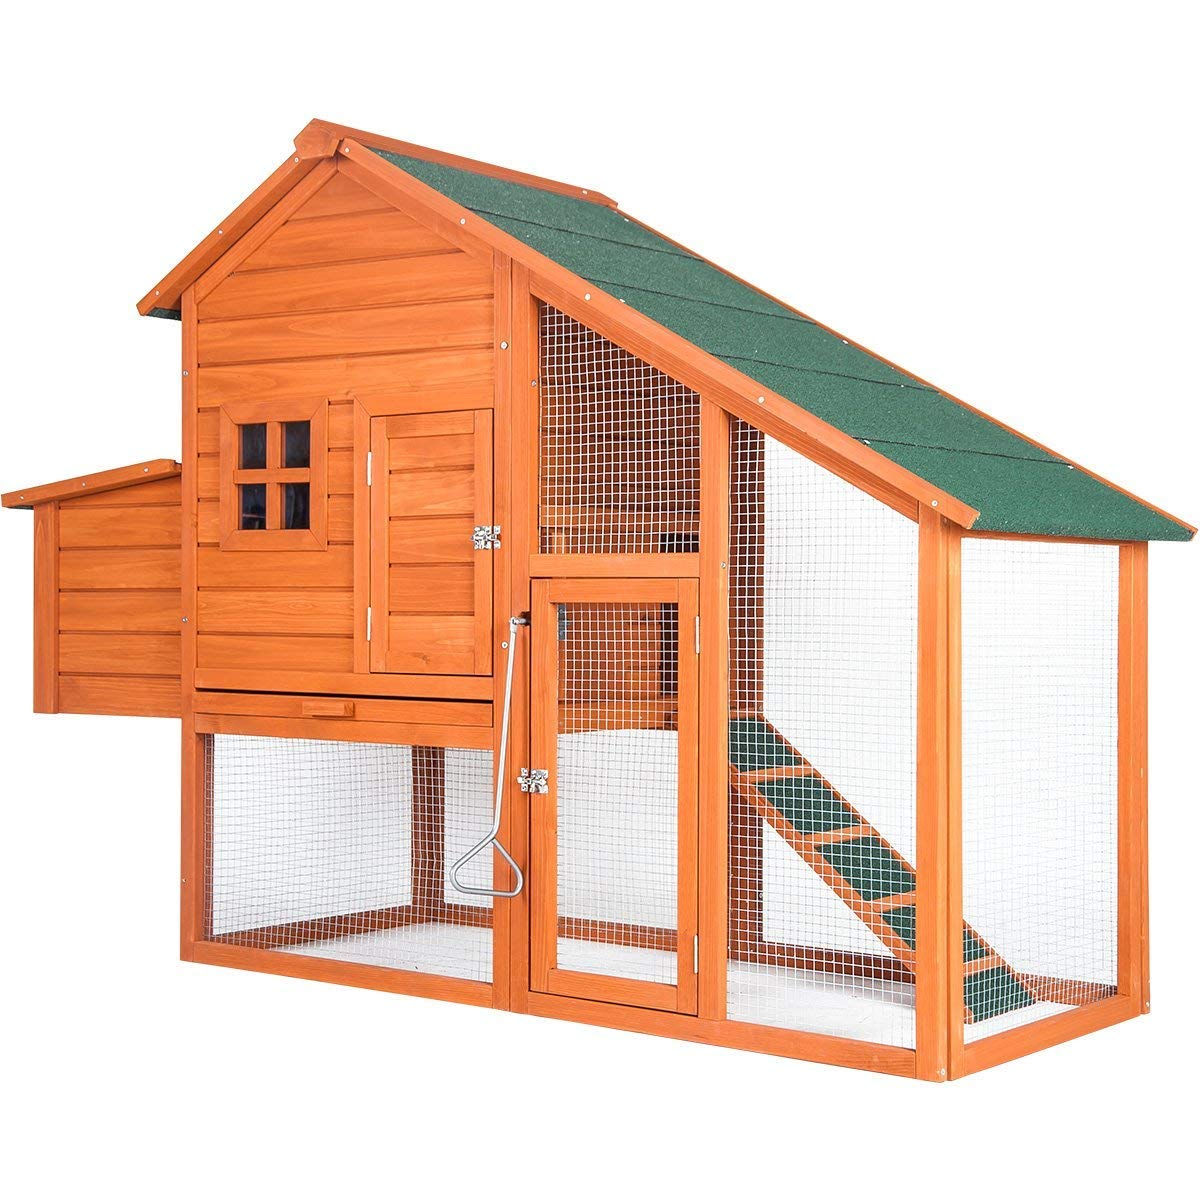 Purlove Chicken Coop Small Animal Cage Pet Rabbit Bunny Wood House Hutch with Tray, Natural Color(Chicken Coop #1)